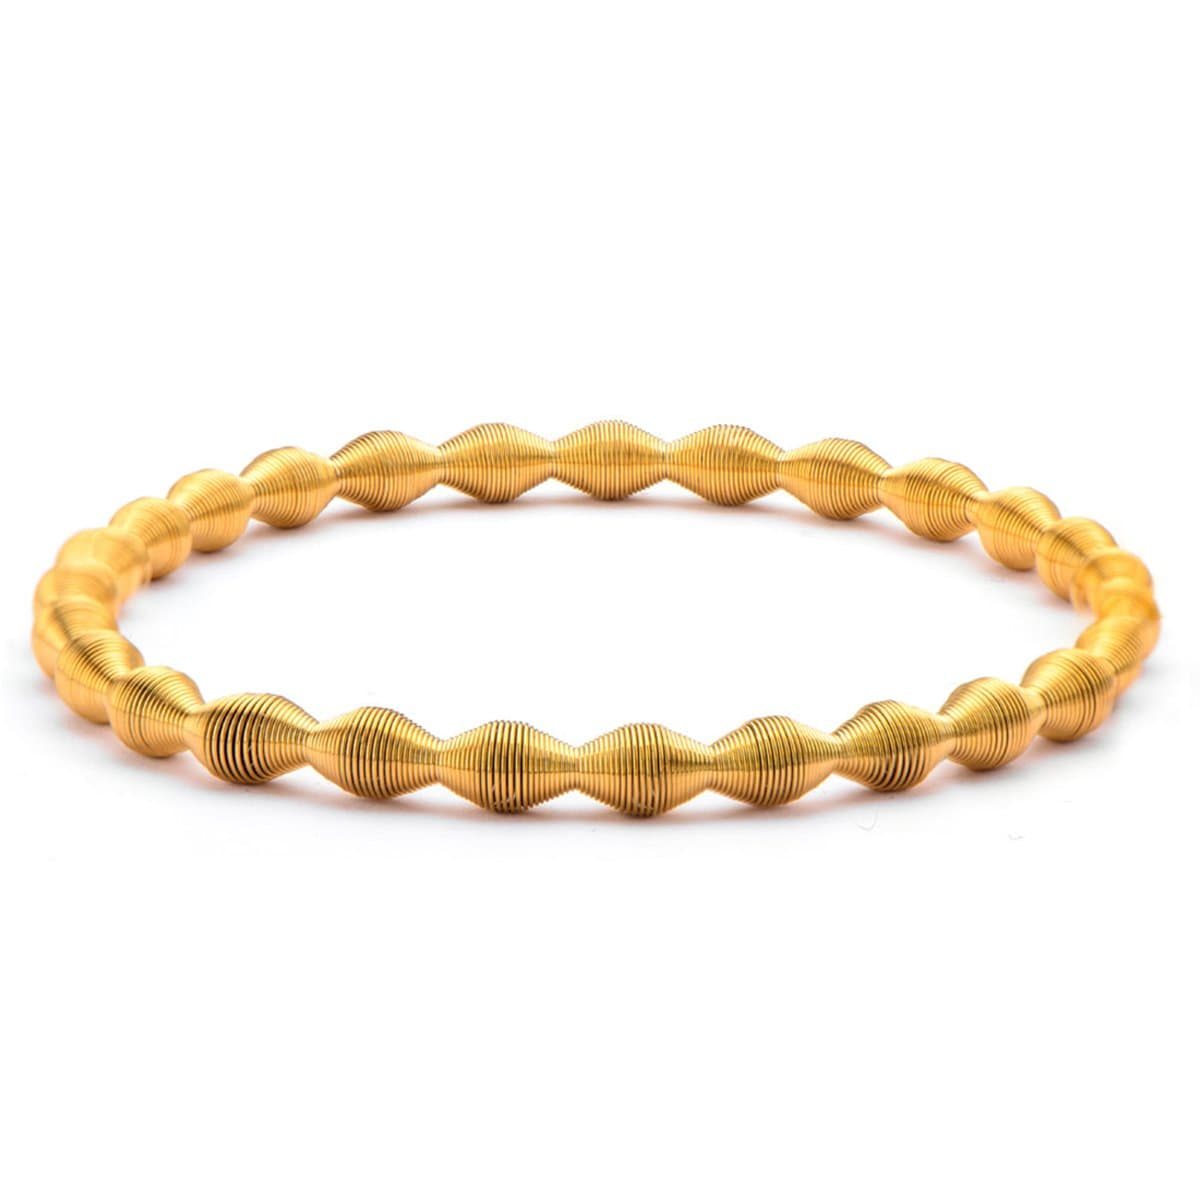 Gold Stainless Steel Polished Spring Stretch Bracelet